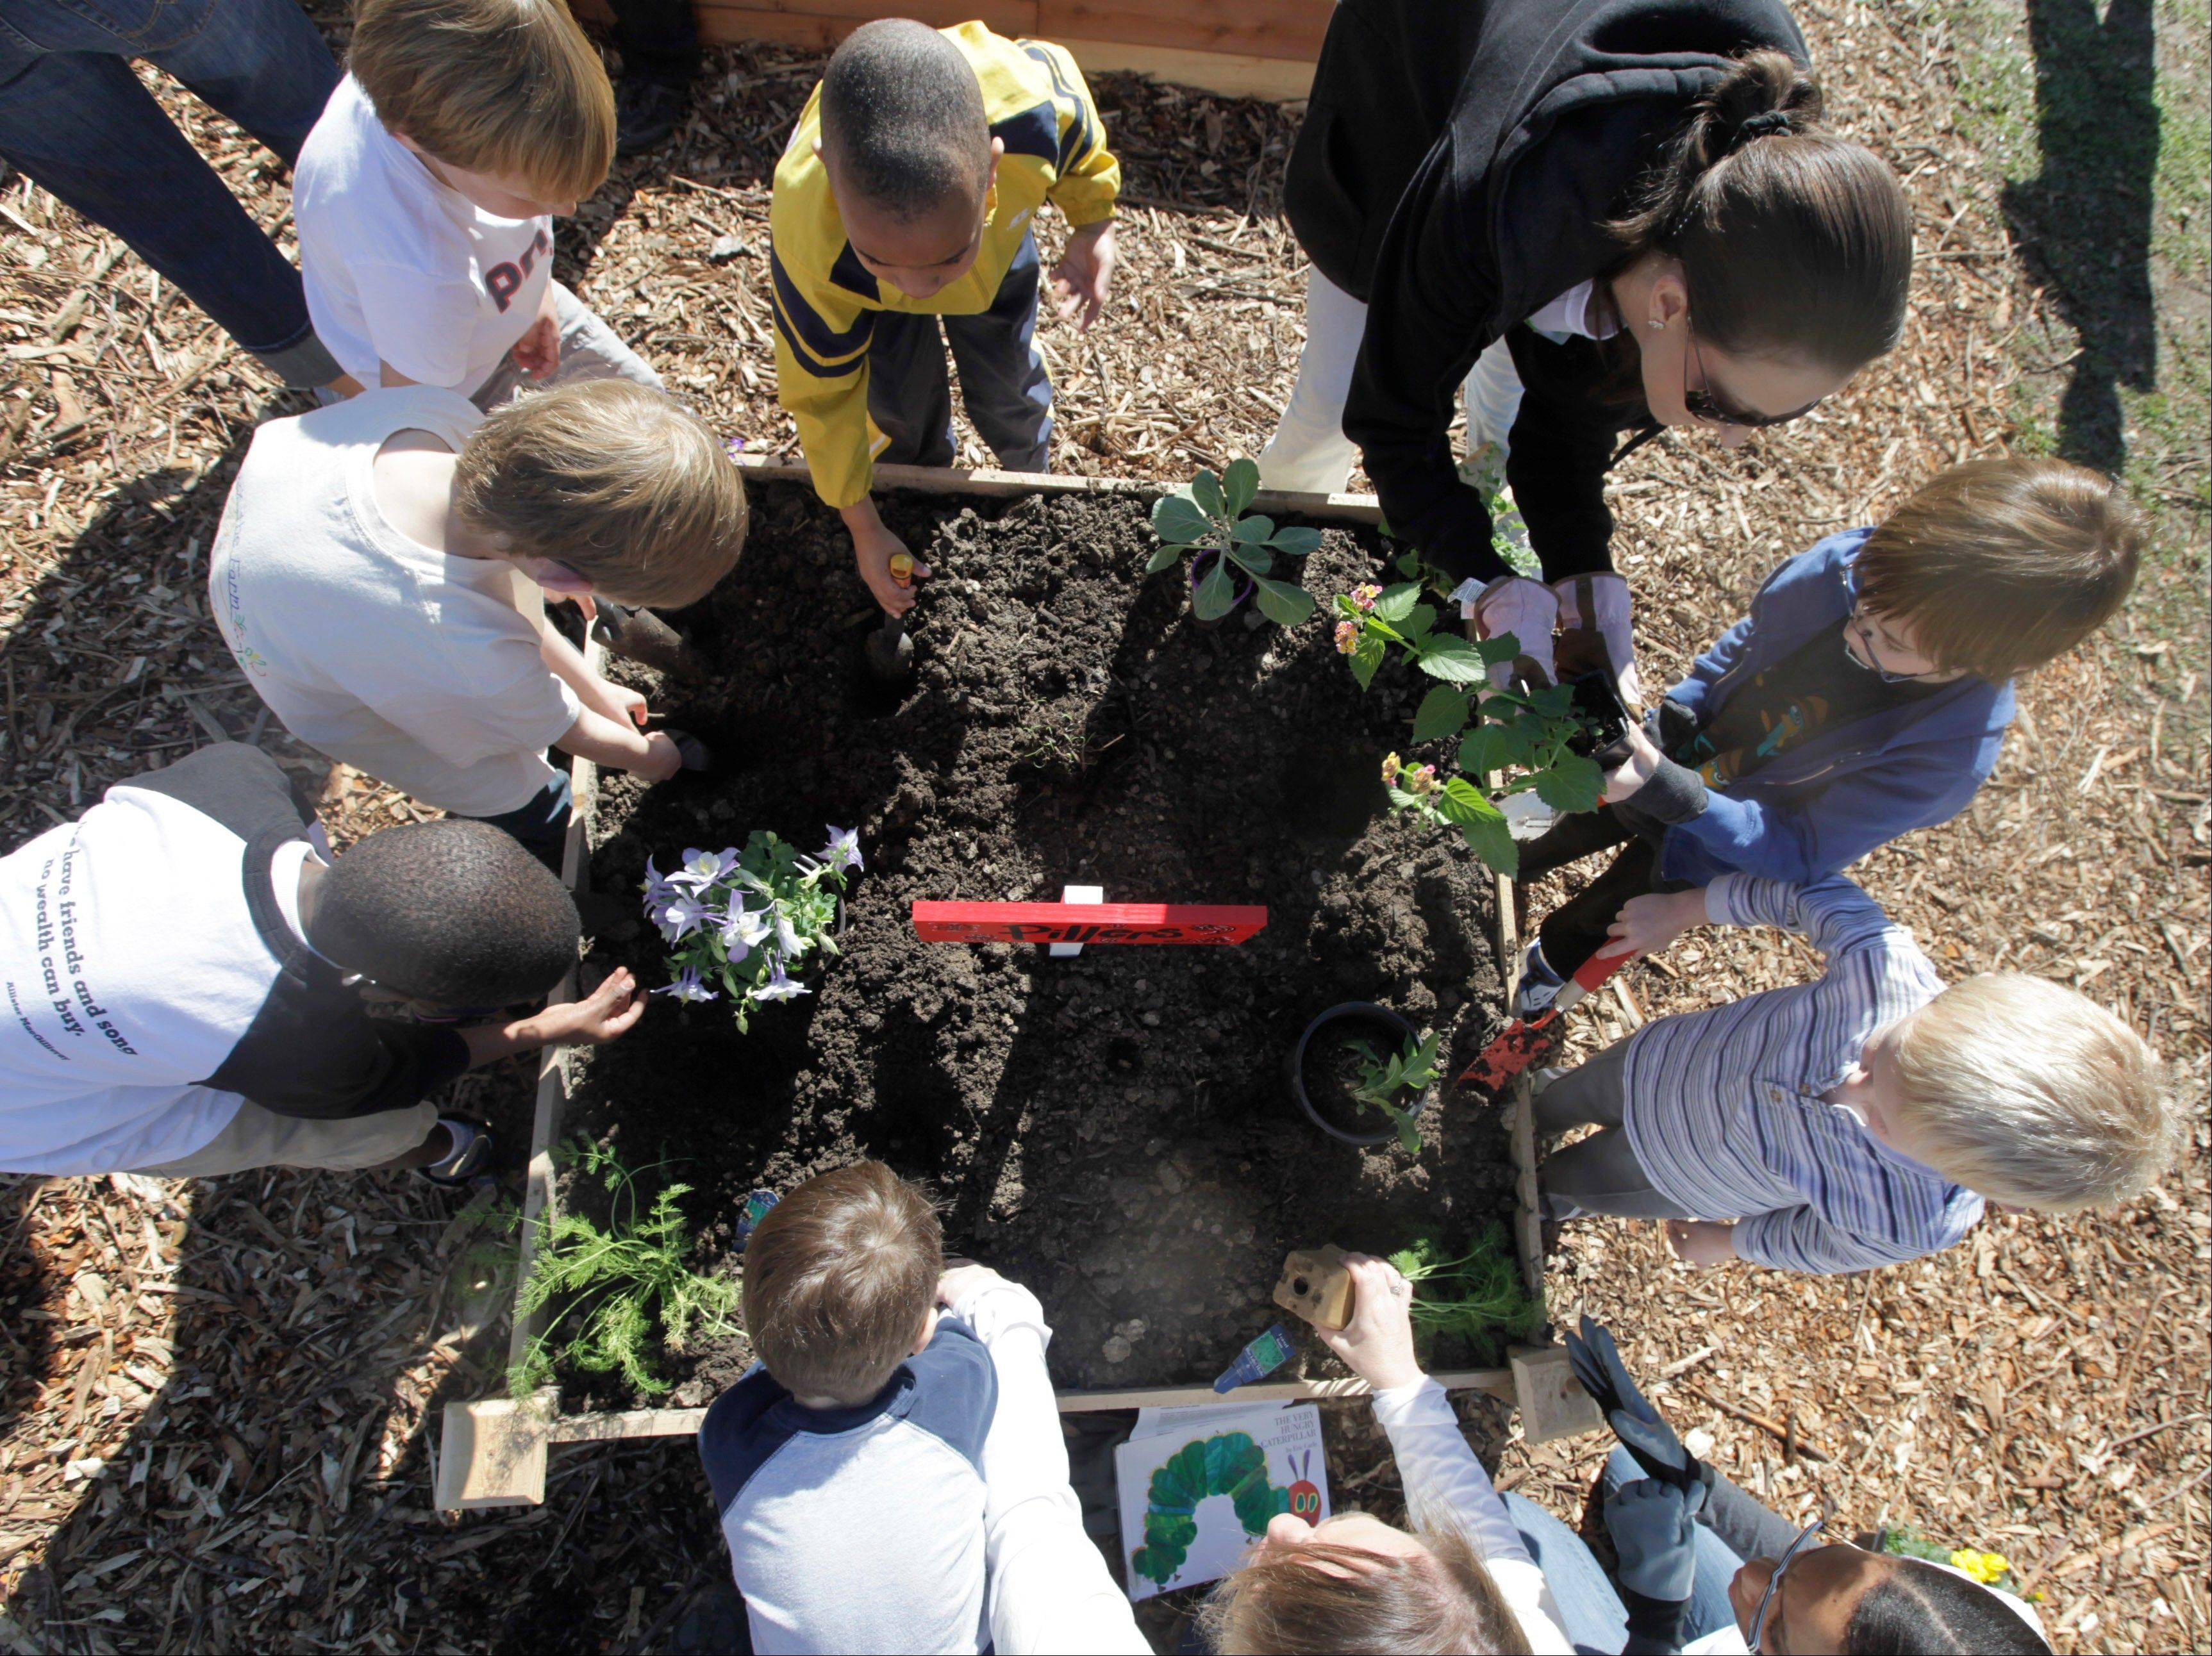 Kindergartners at Moss Haven Elementary school work in a student garden in Dallas, Texas. Gardens planted in schoolyards nationally are intended to encourage healthier eating, and also teach young students about the environment, science, teamwork, math and leadership.